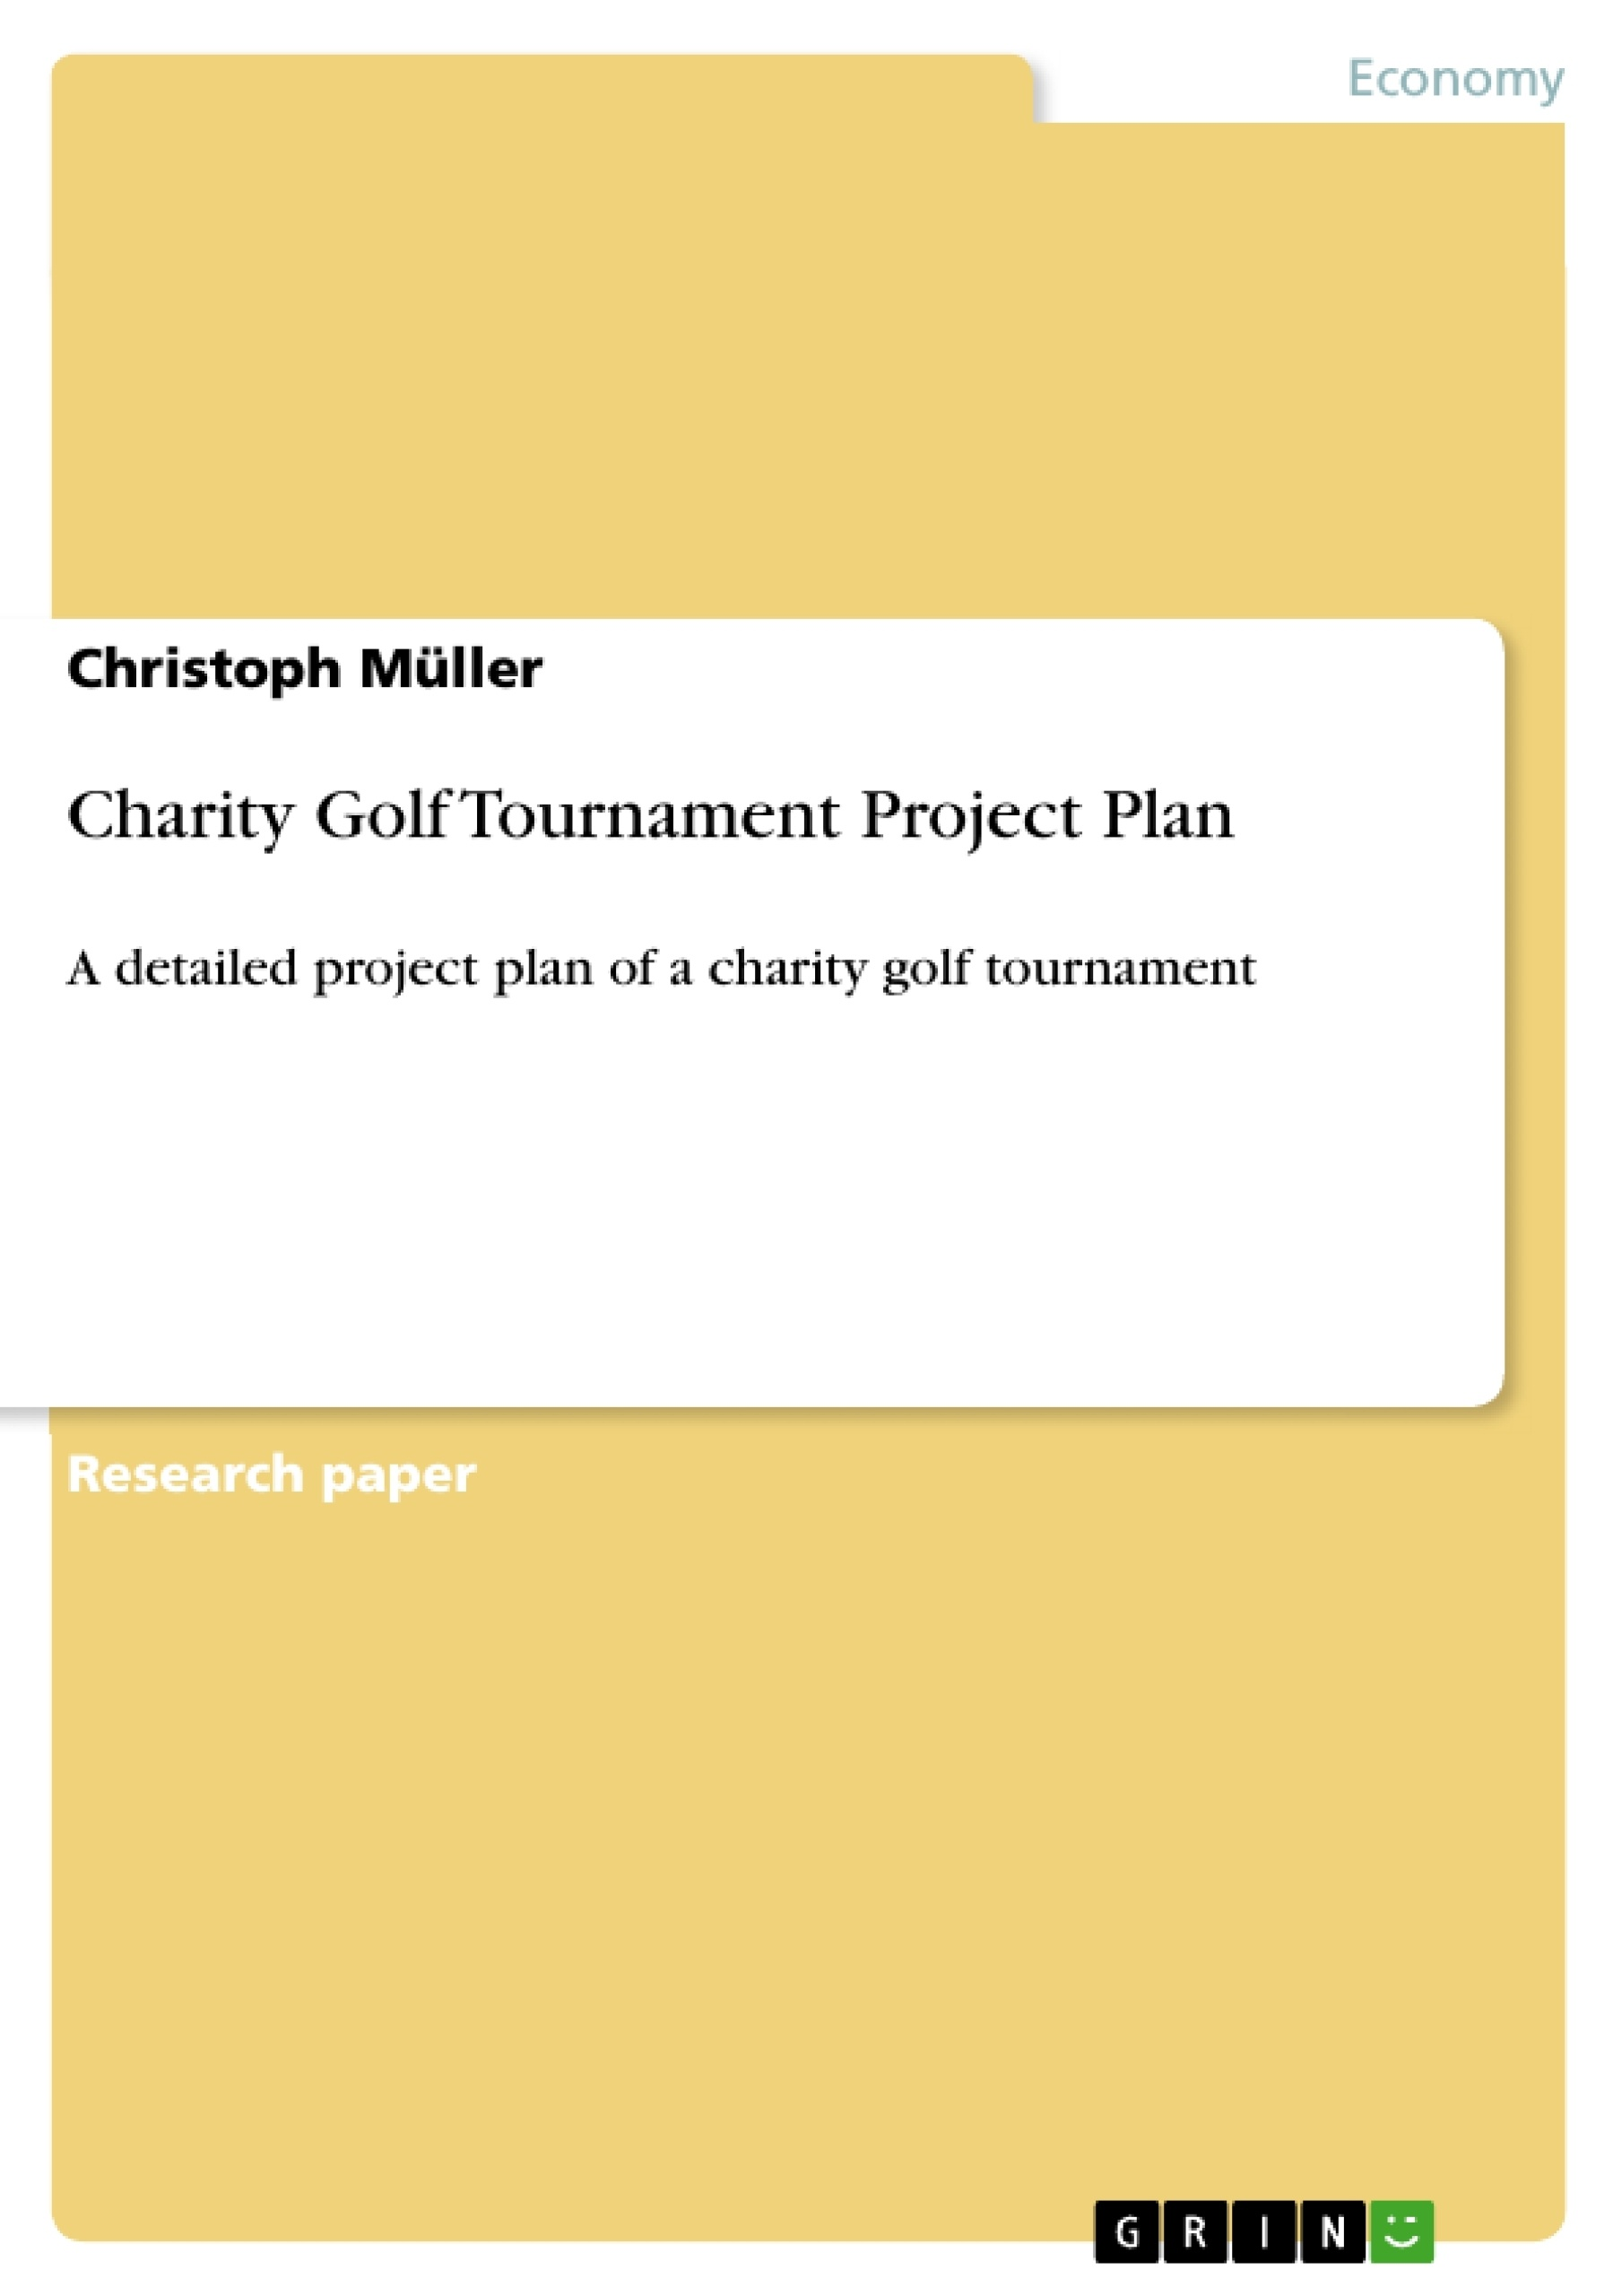 Title: Charity Golf Tournament Project Plan